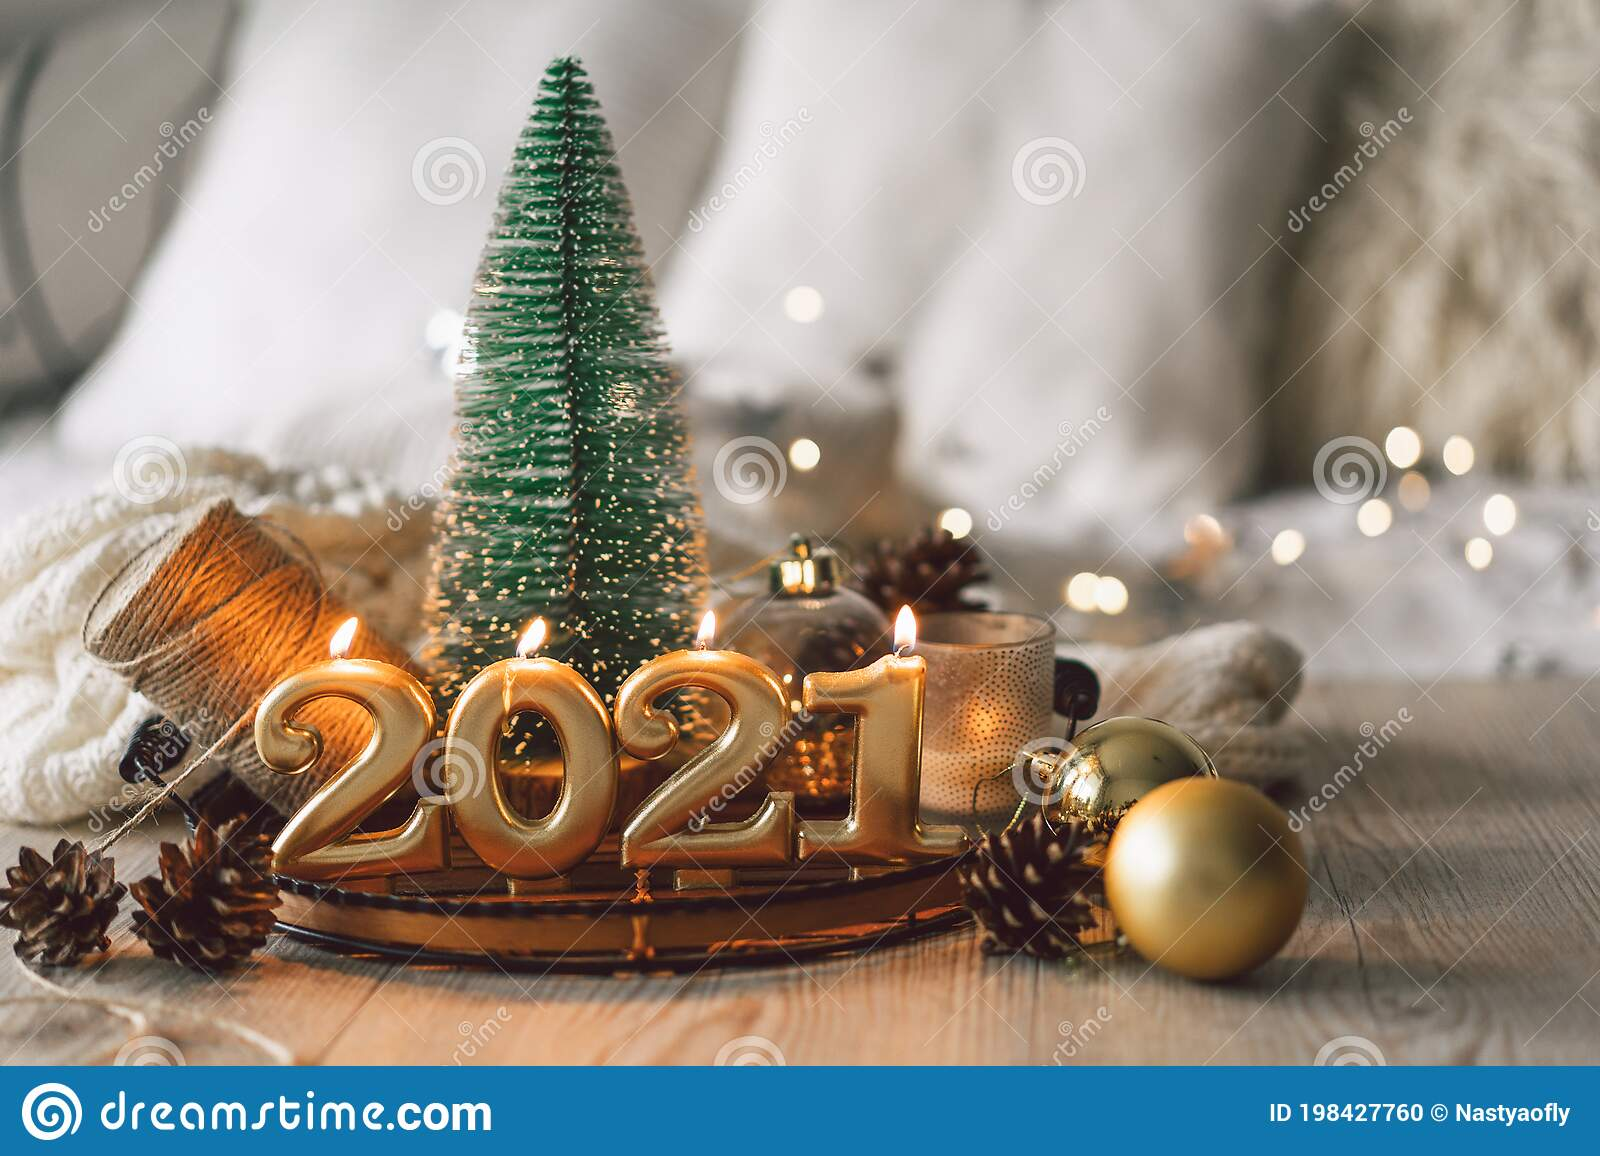 2021 Christmas Ebvent Happy New Years 2021 Christmas Background With Fir Tree Cones And Christmas Decorations Stock Photo Image Of Background Event 198427760